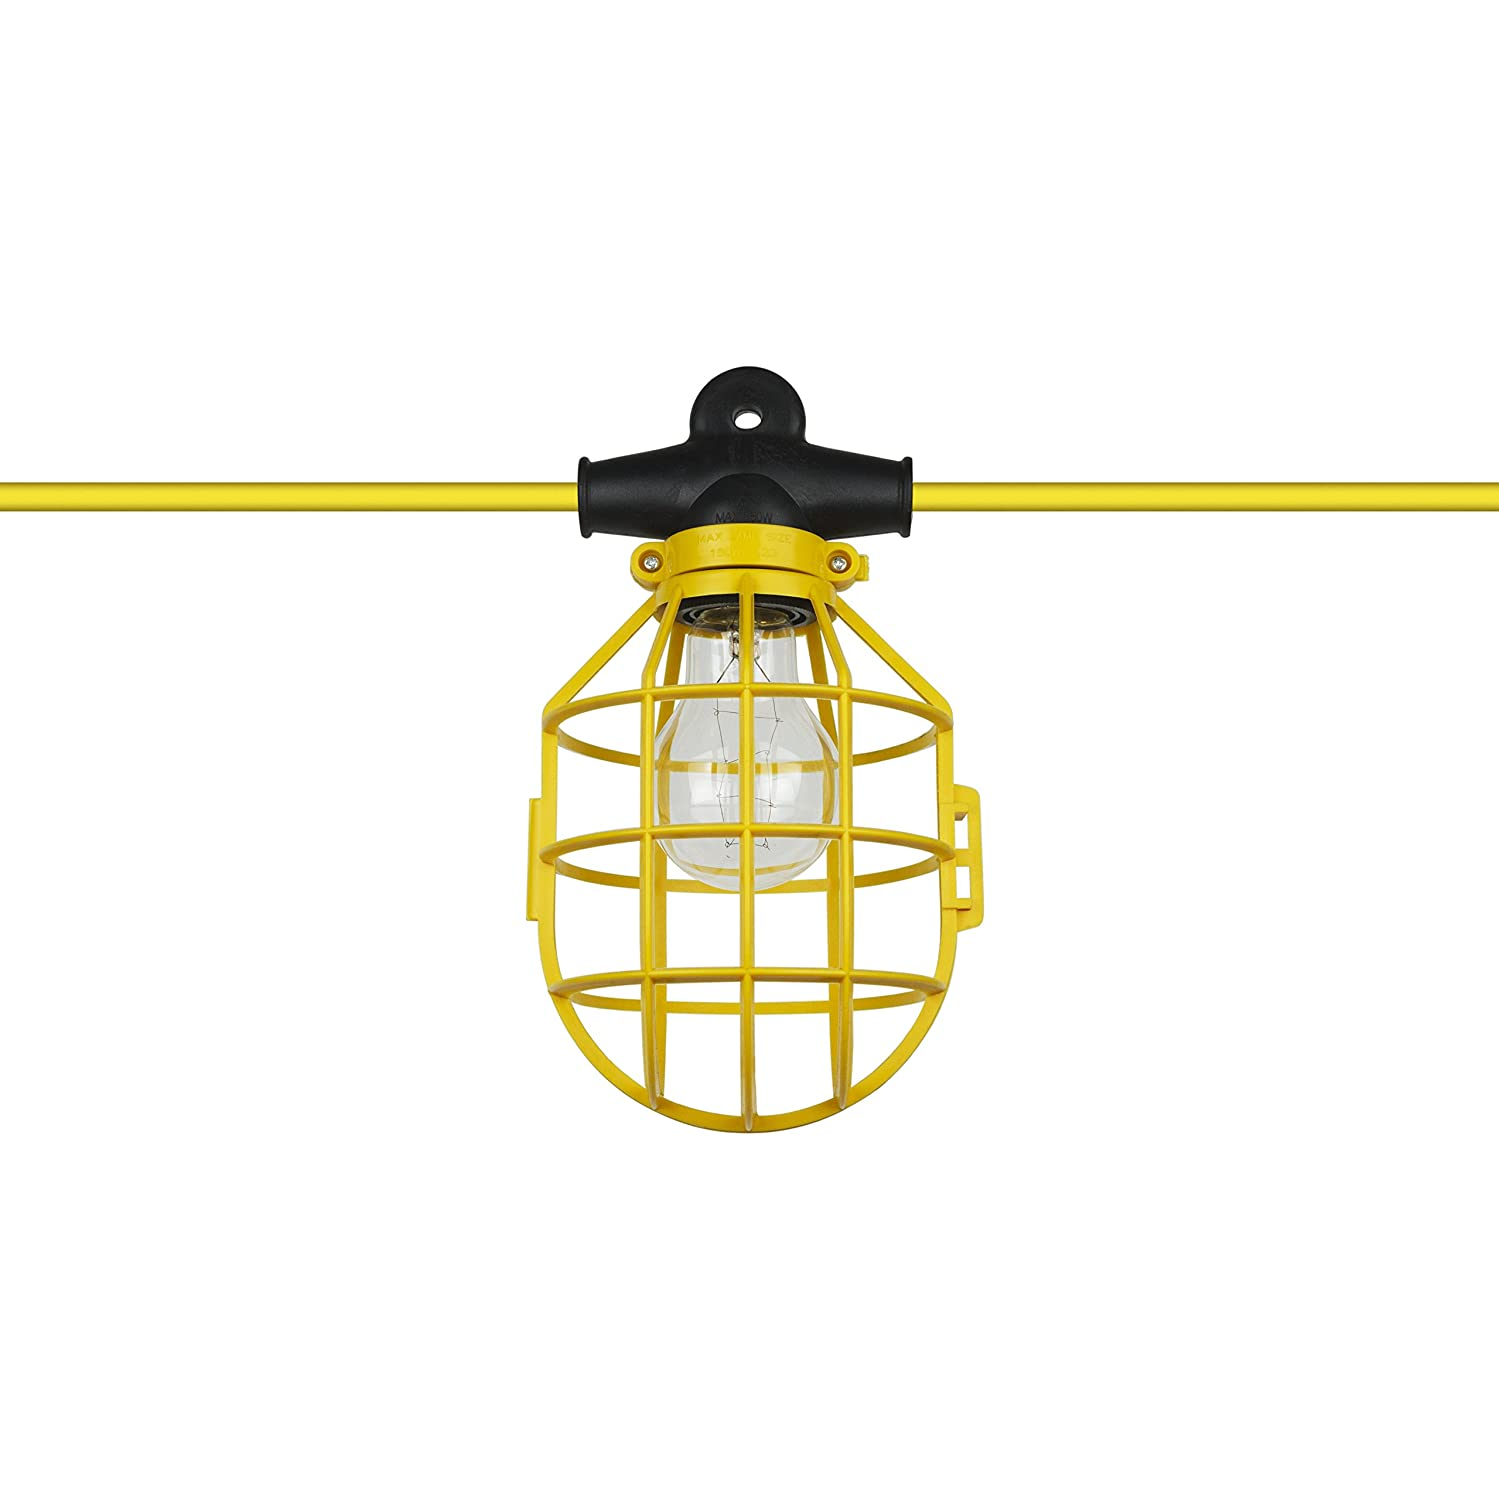 Sunlite 50 foot 5 bulb Incandescent Temporary Portable String Work Lighting, Yellow EX50-14/2/SL